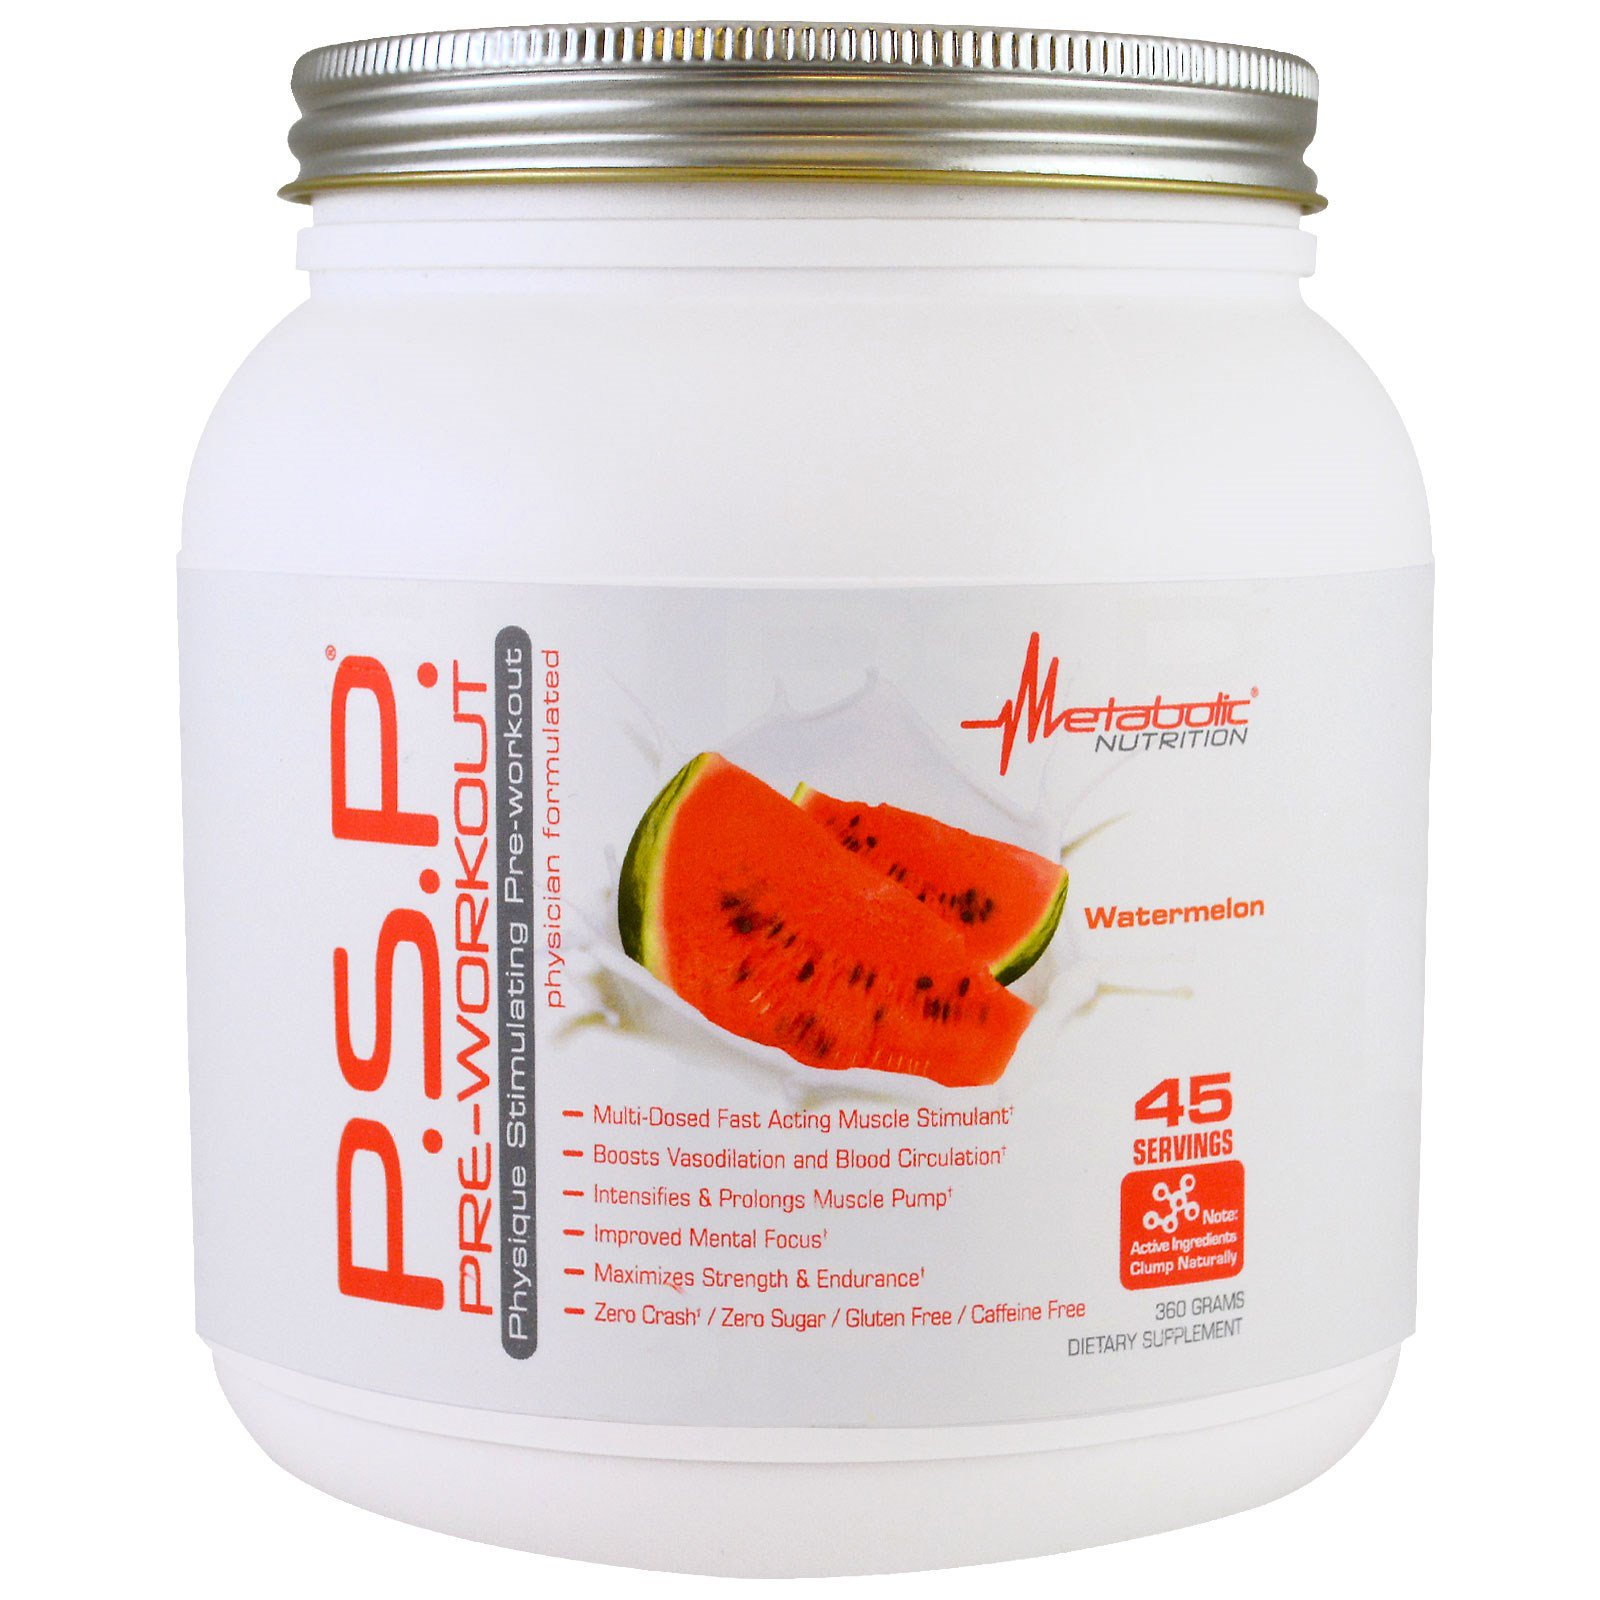 Metabolic Nutrition, P.S.P. Pre-Workout, Watermelon, 360 g (Discontinued  Item)